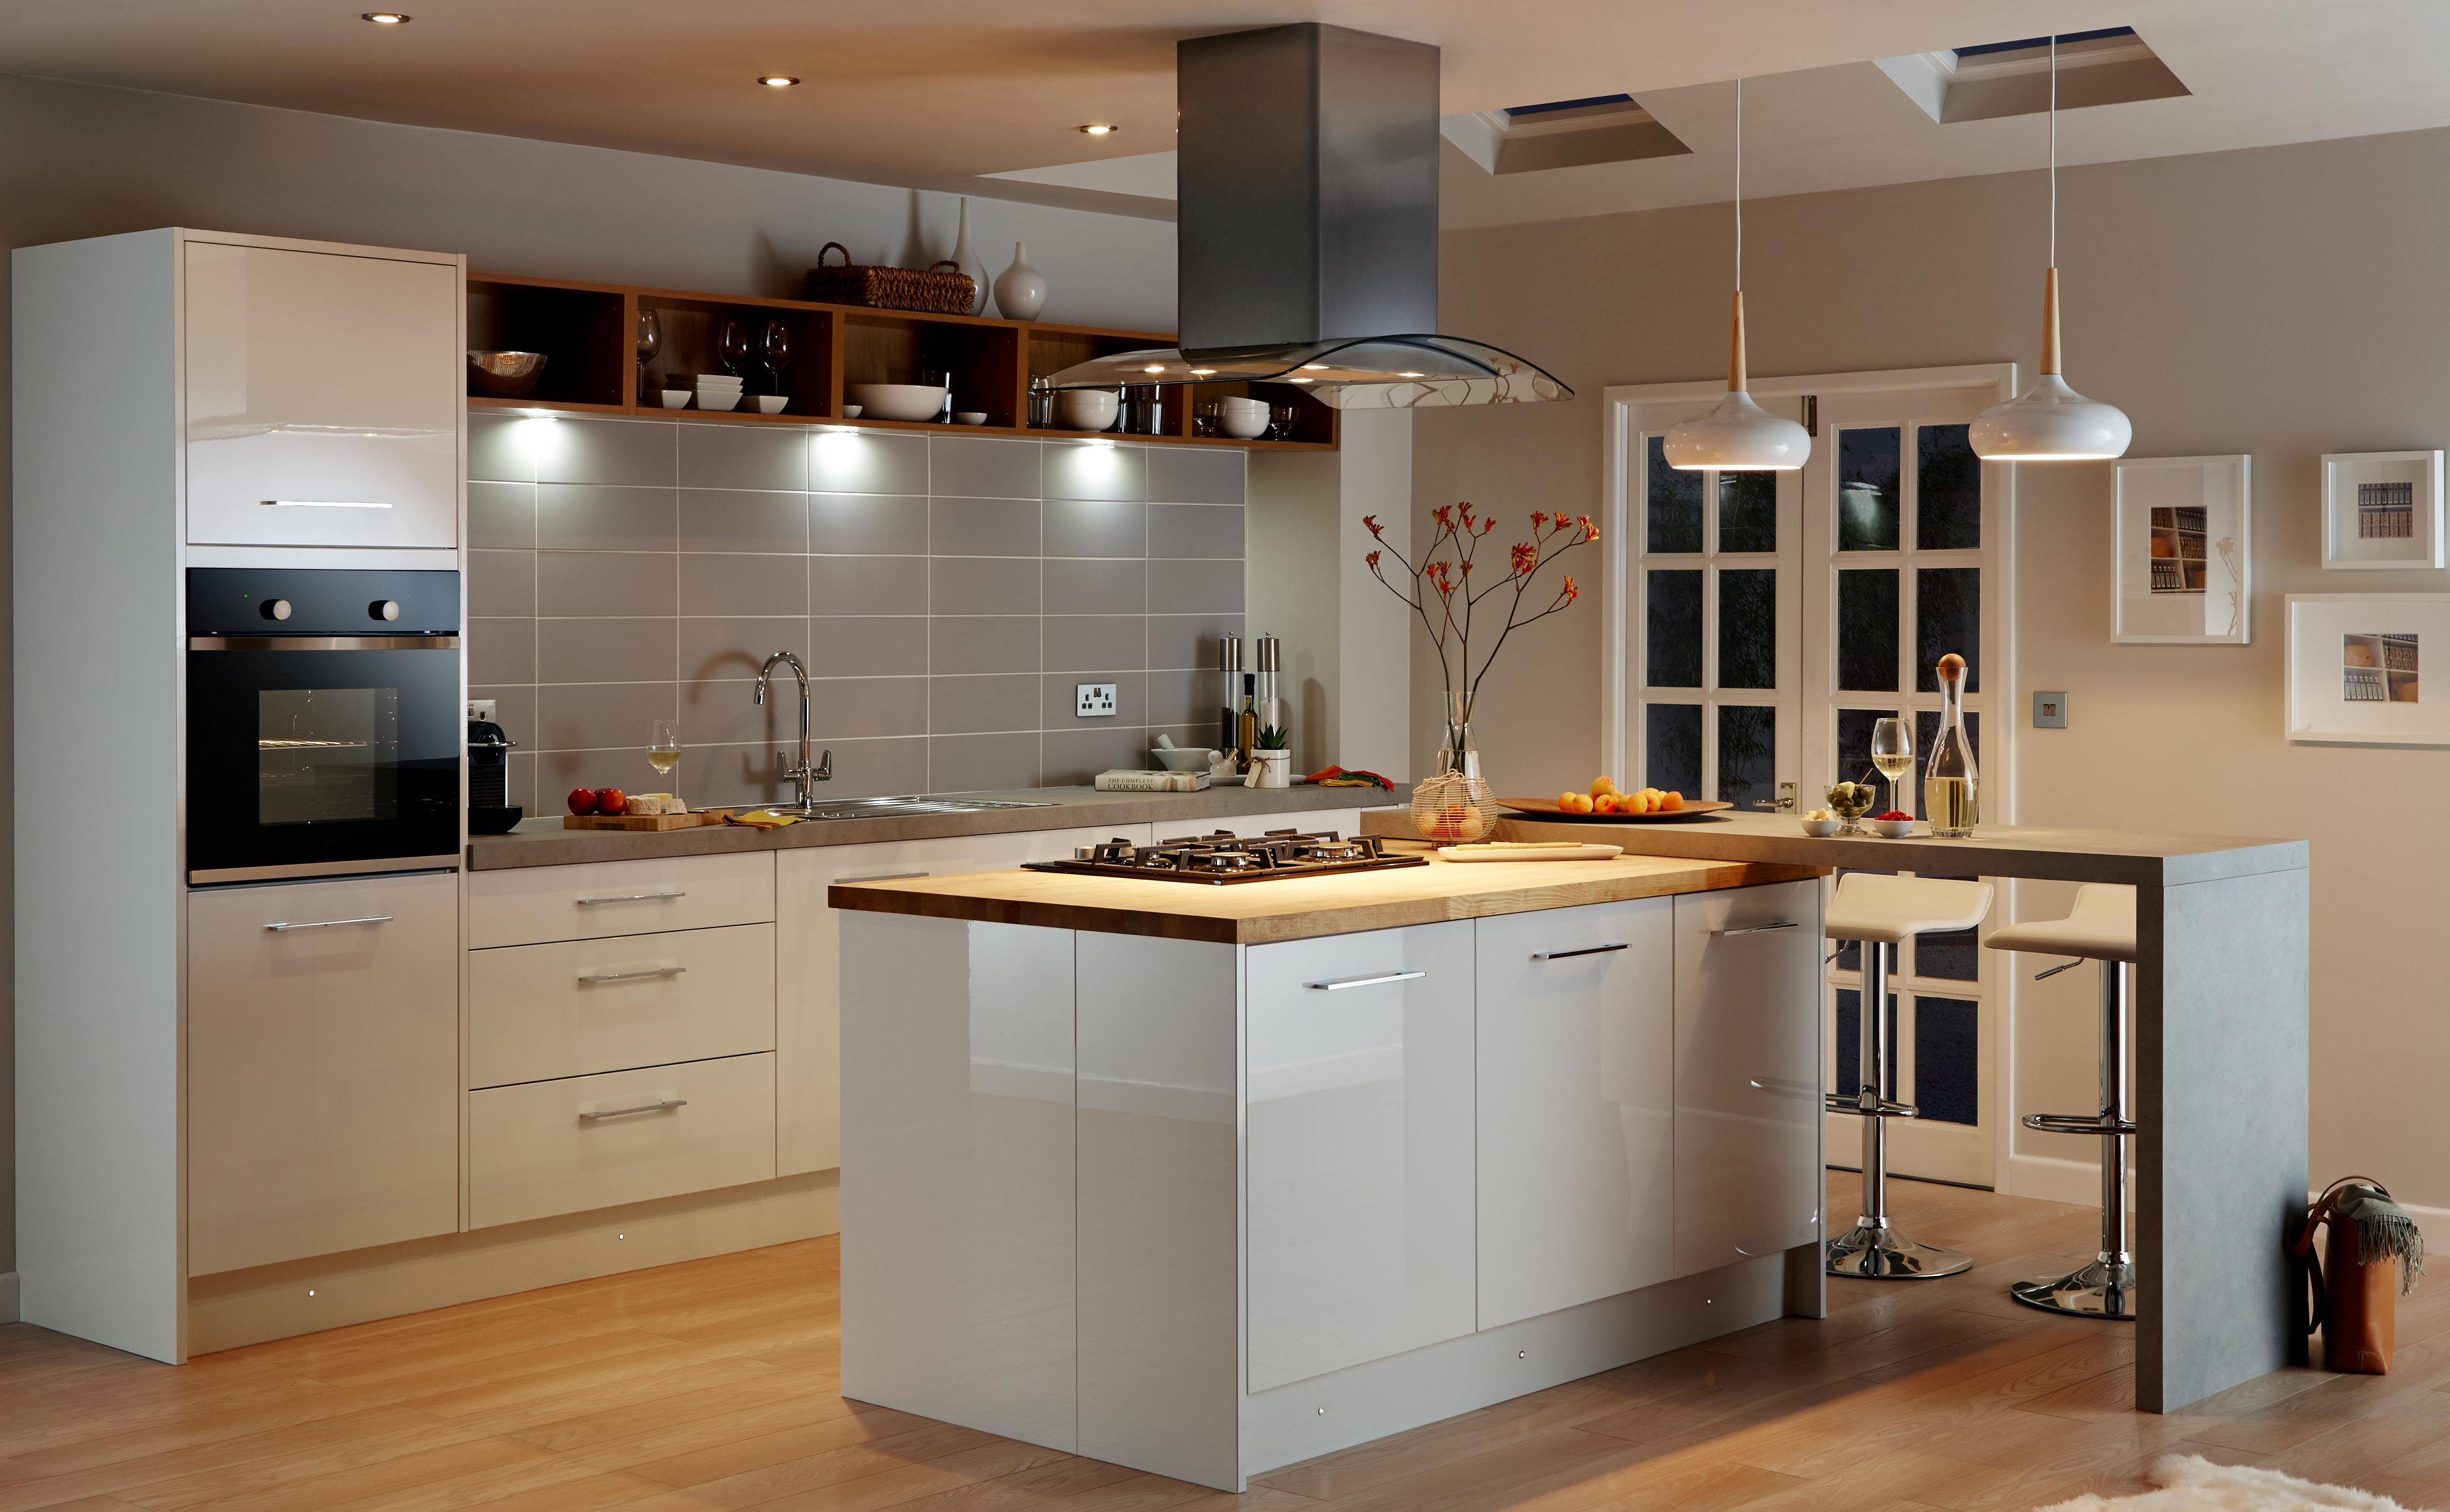 Lighting in the cooke lewis raffello high gloss white kitchen